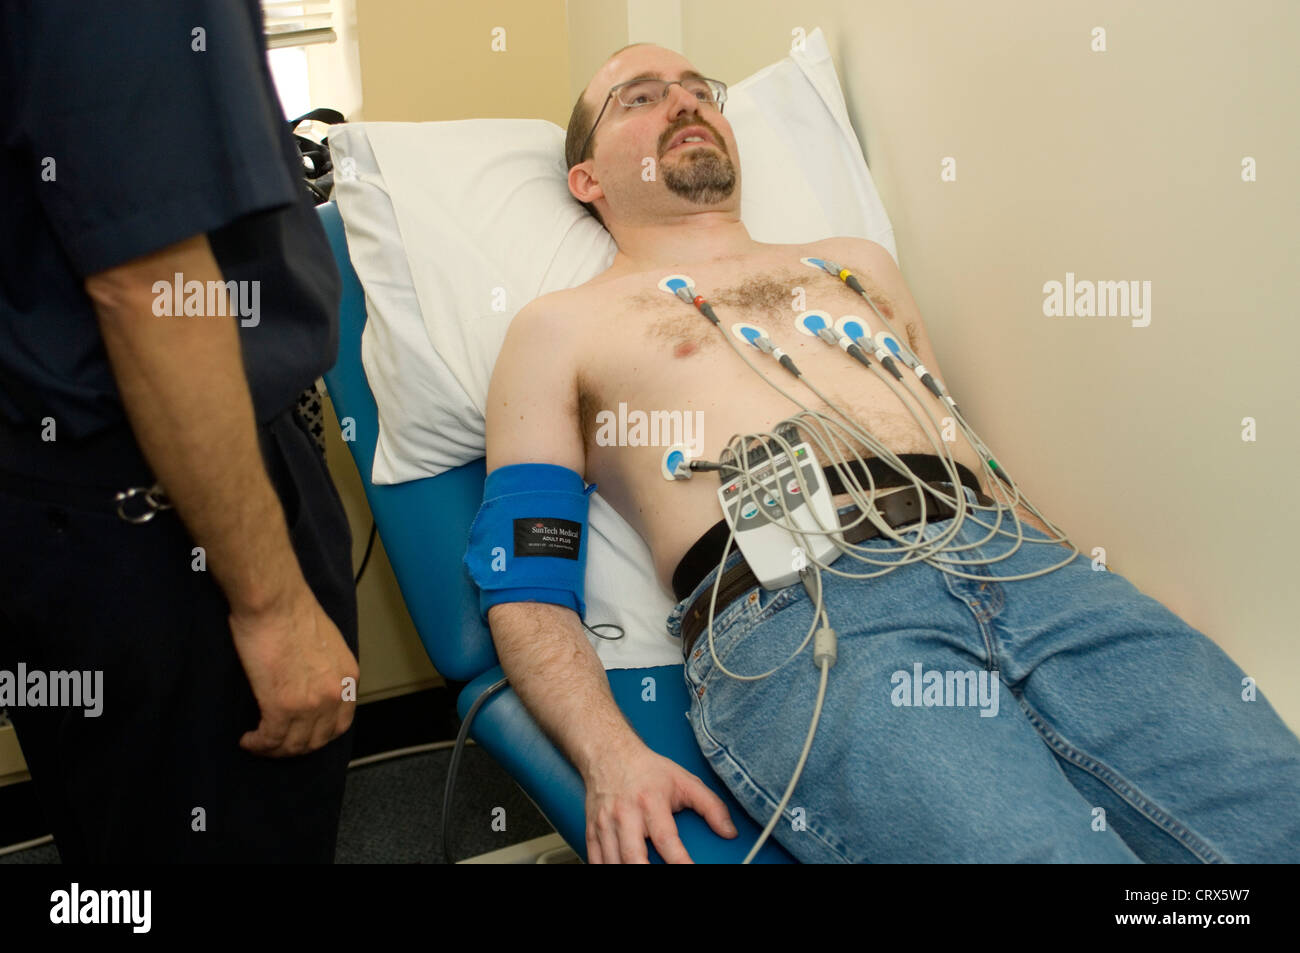 Electrocardiogram Man Stock Photos Ekg Wiring Diagram A Wired Up To Undergo An Evaluate His Cardiac Function And Diagnose